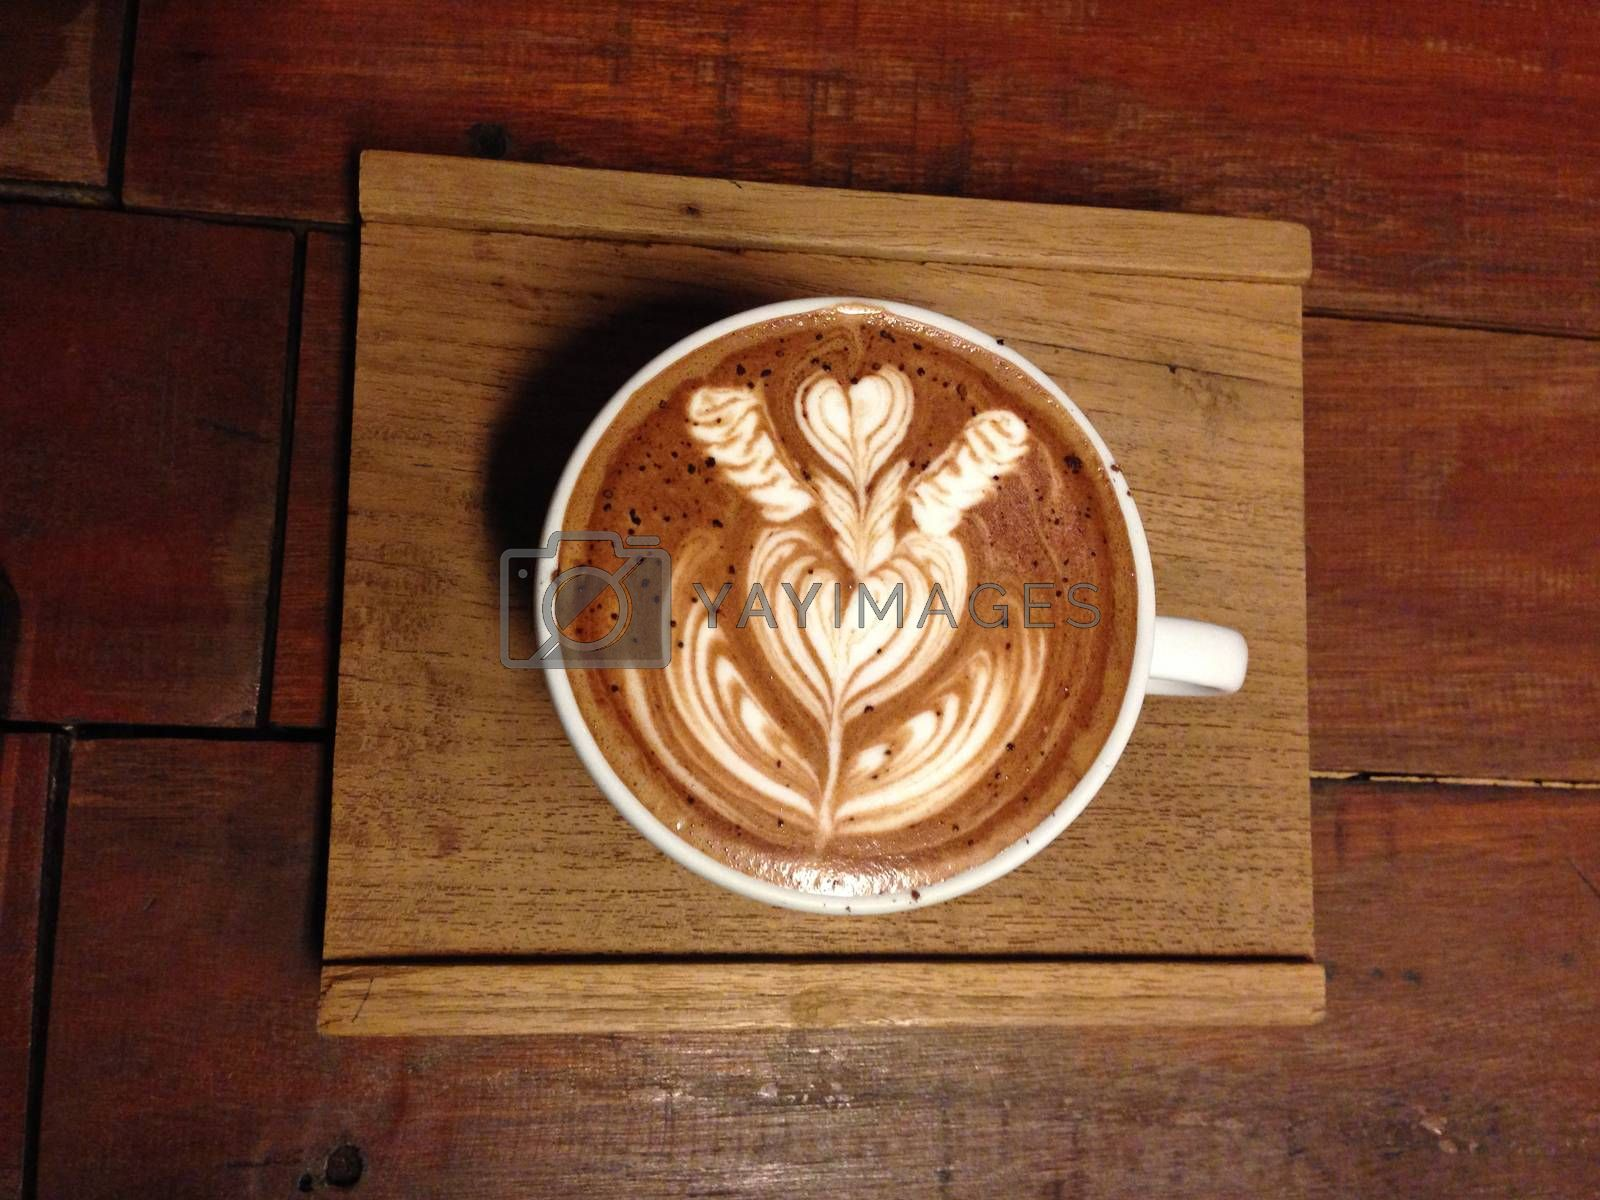 Royalty free image of a cup of coffee with latte art by pandara